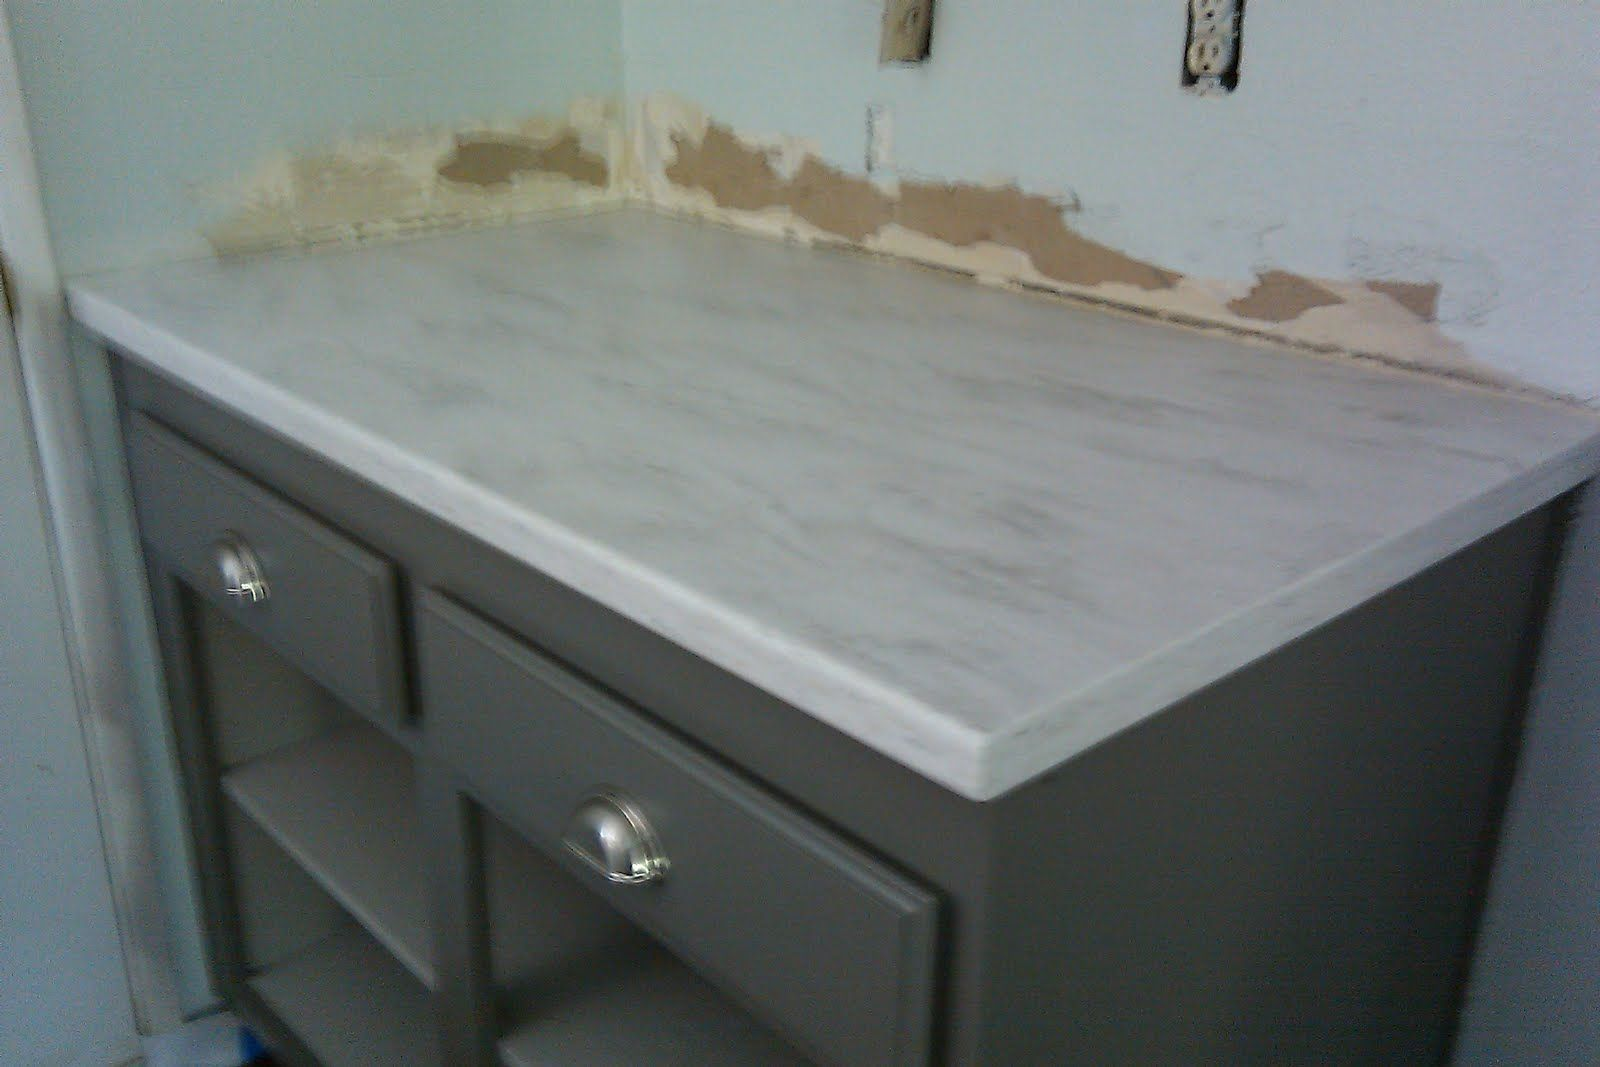 Corian countertop in rain cloud | House: Kitchen ...